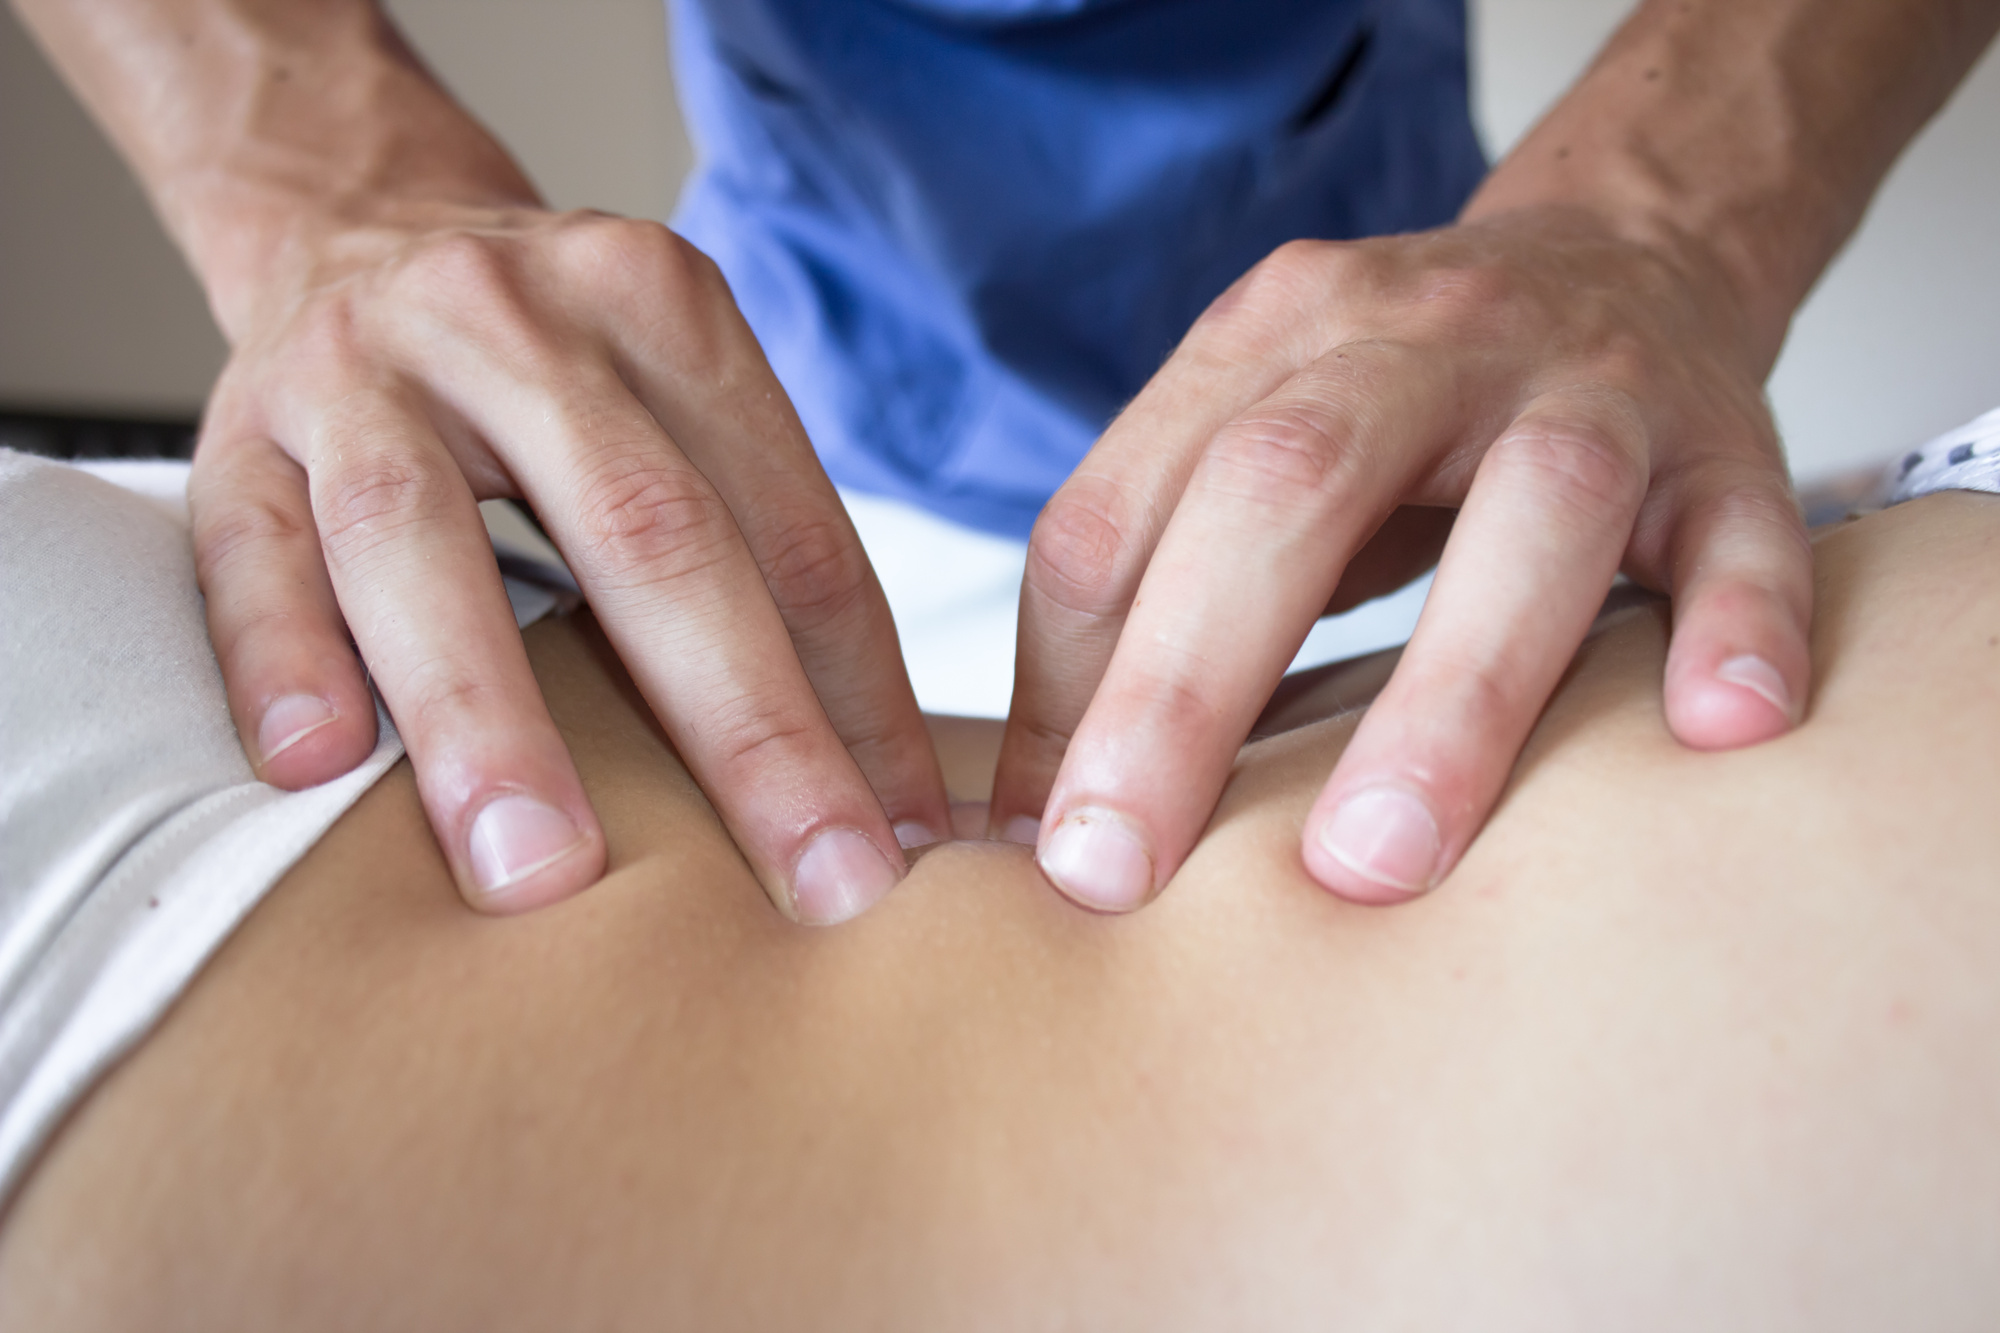 Spinal Manipulation Procedure